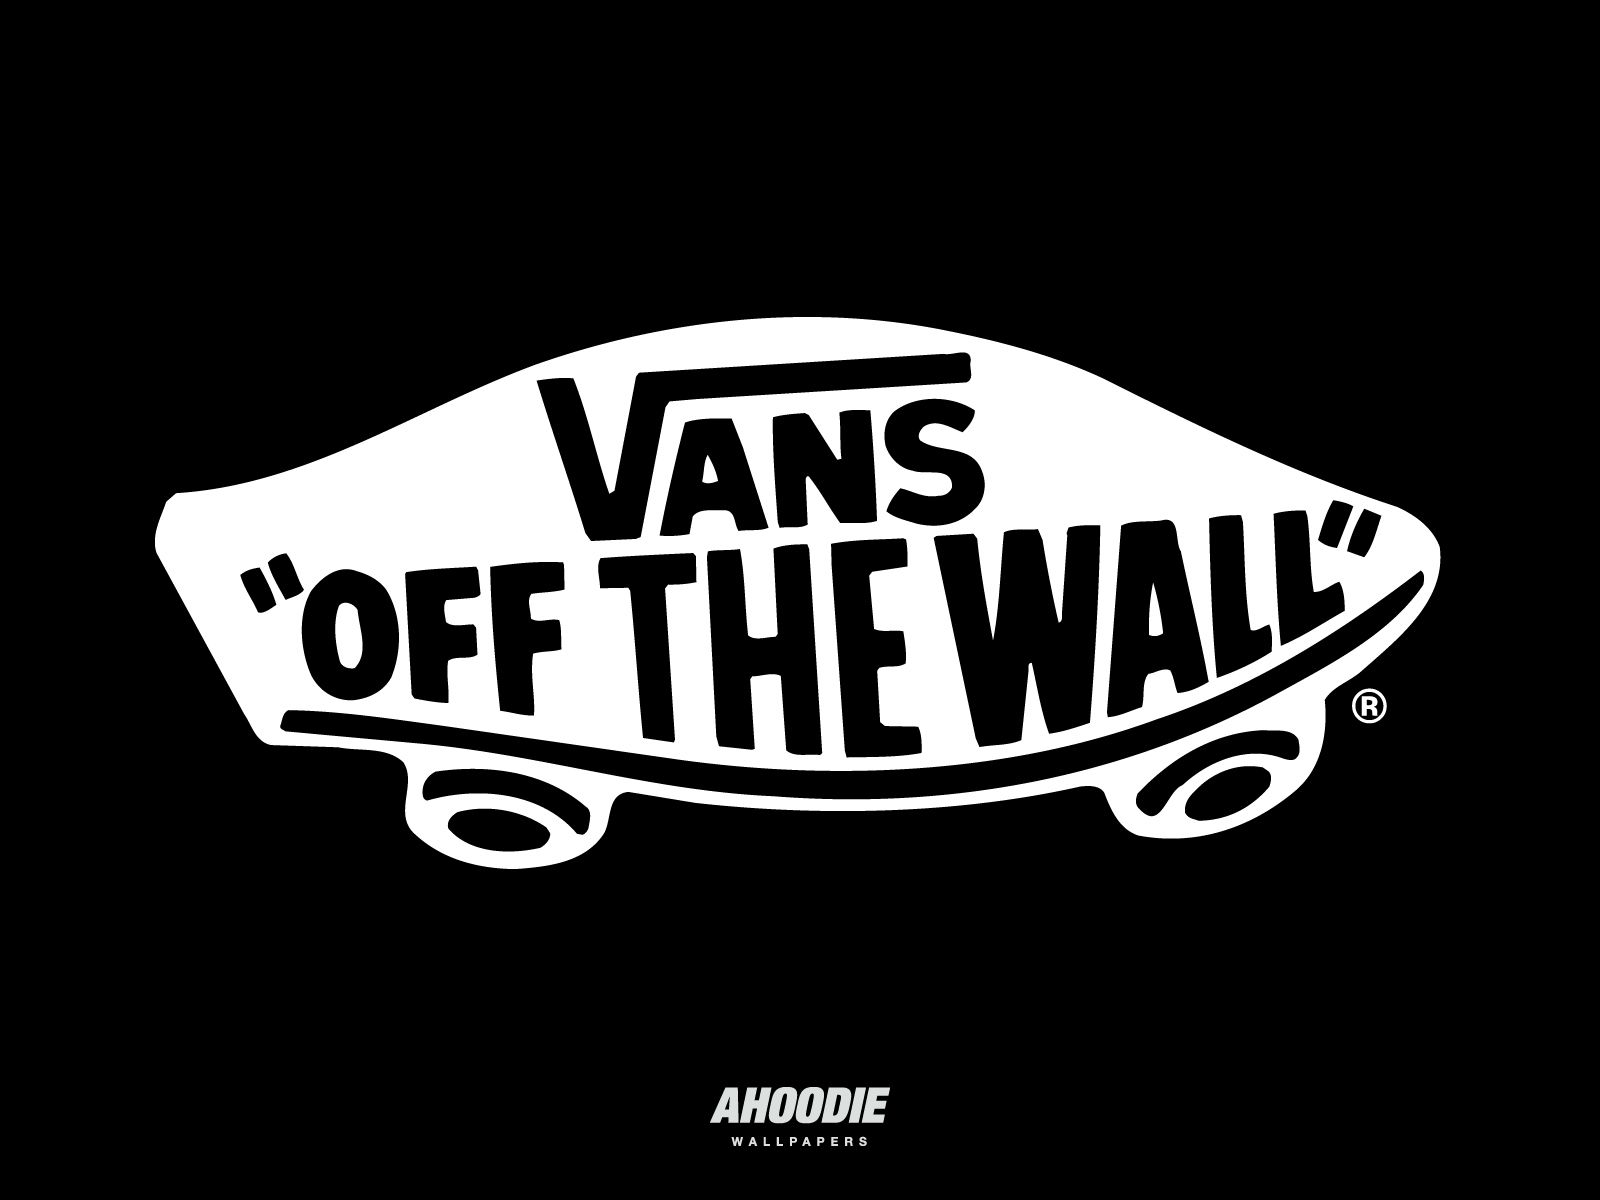 Cool Vans Logo Wallpaper 2014 HD | I HD Images